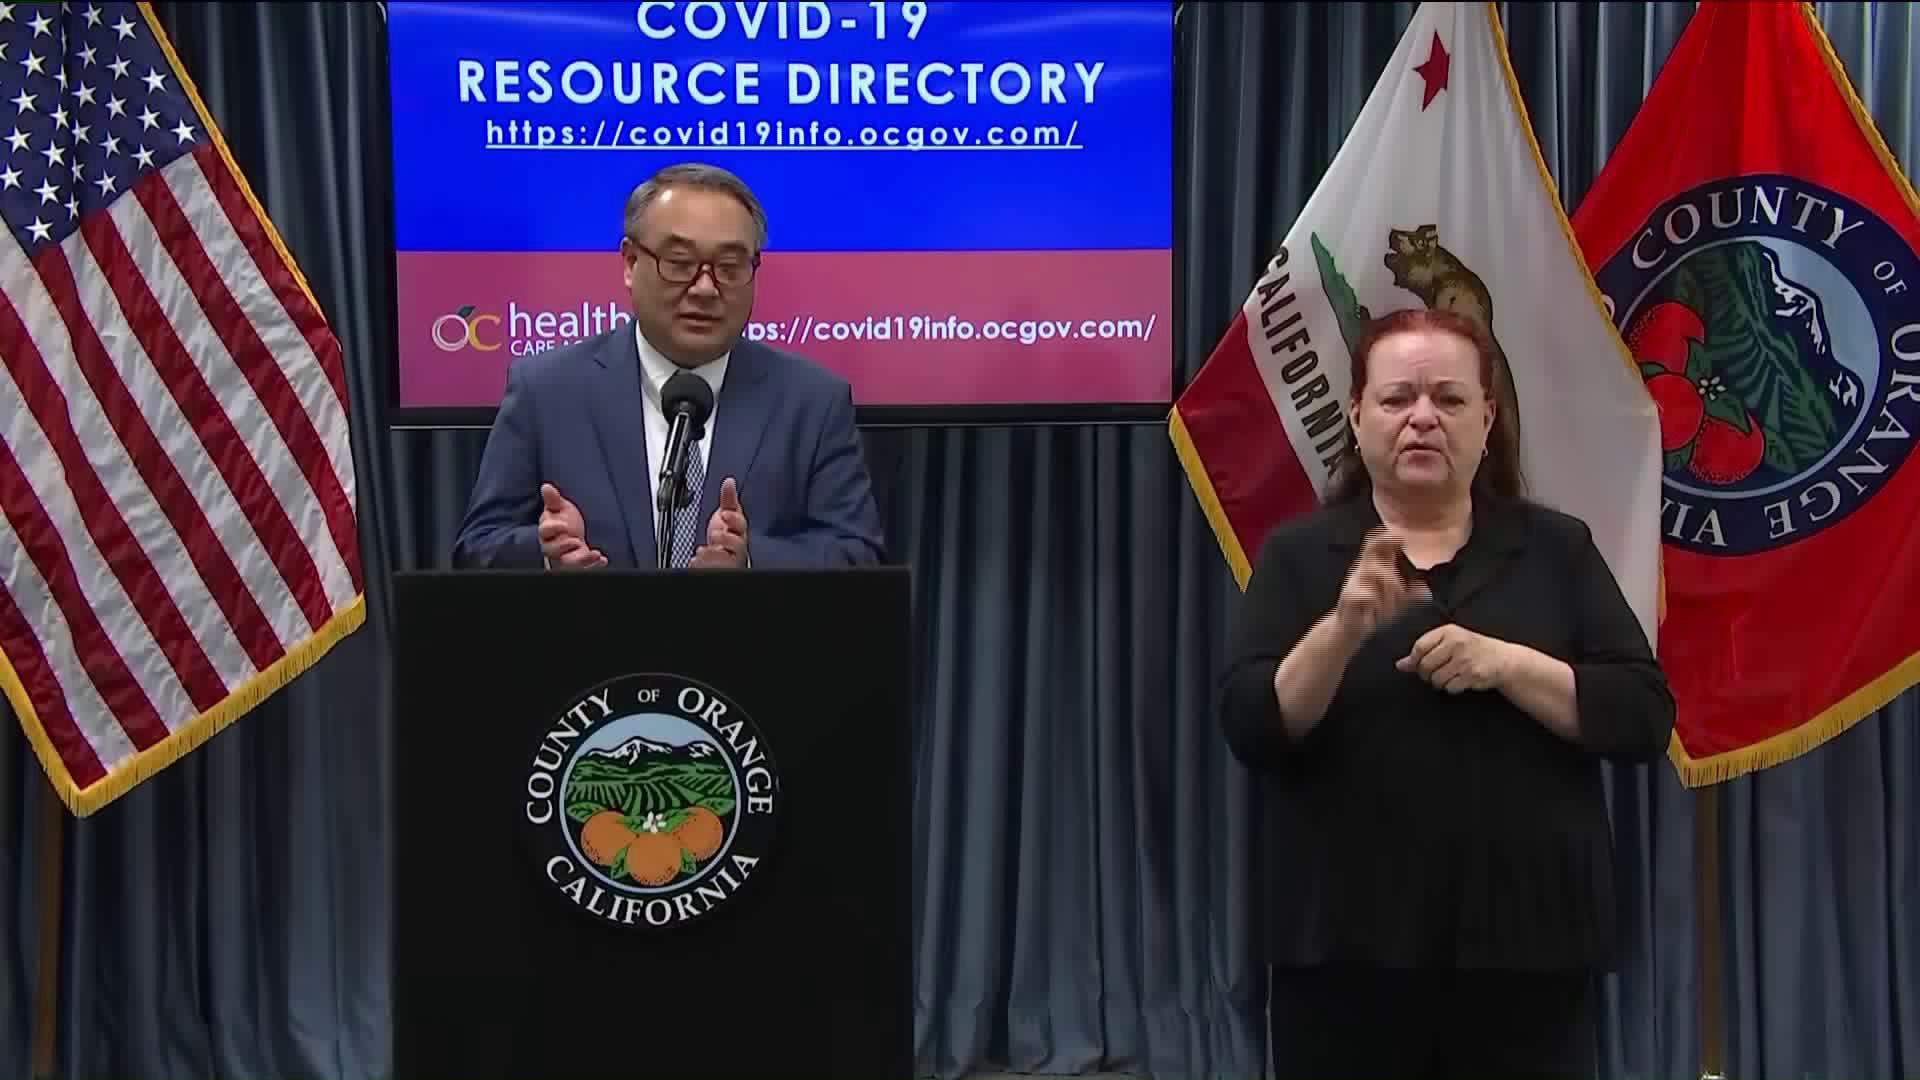 Orange County officials discuss the COVID-19 outbreak during a conference on April 2, 2020. (KTLA)